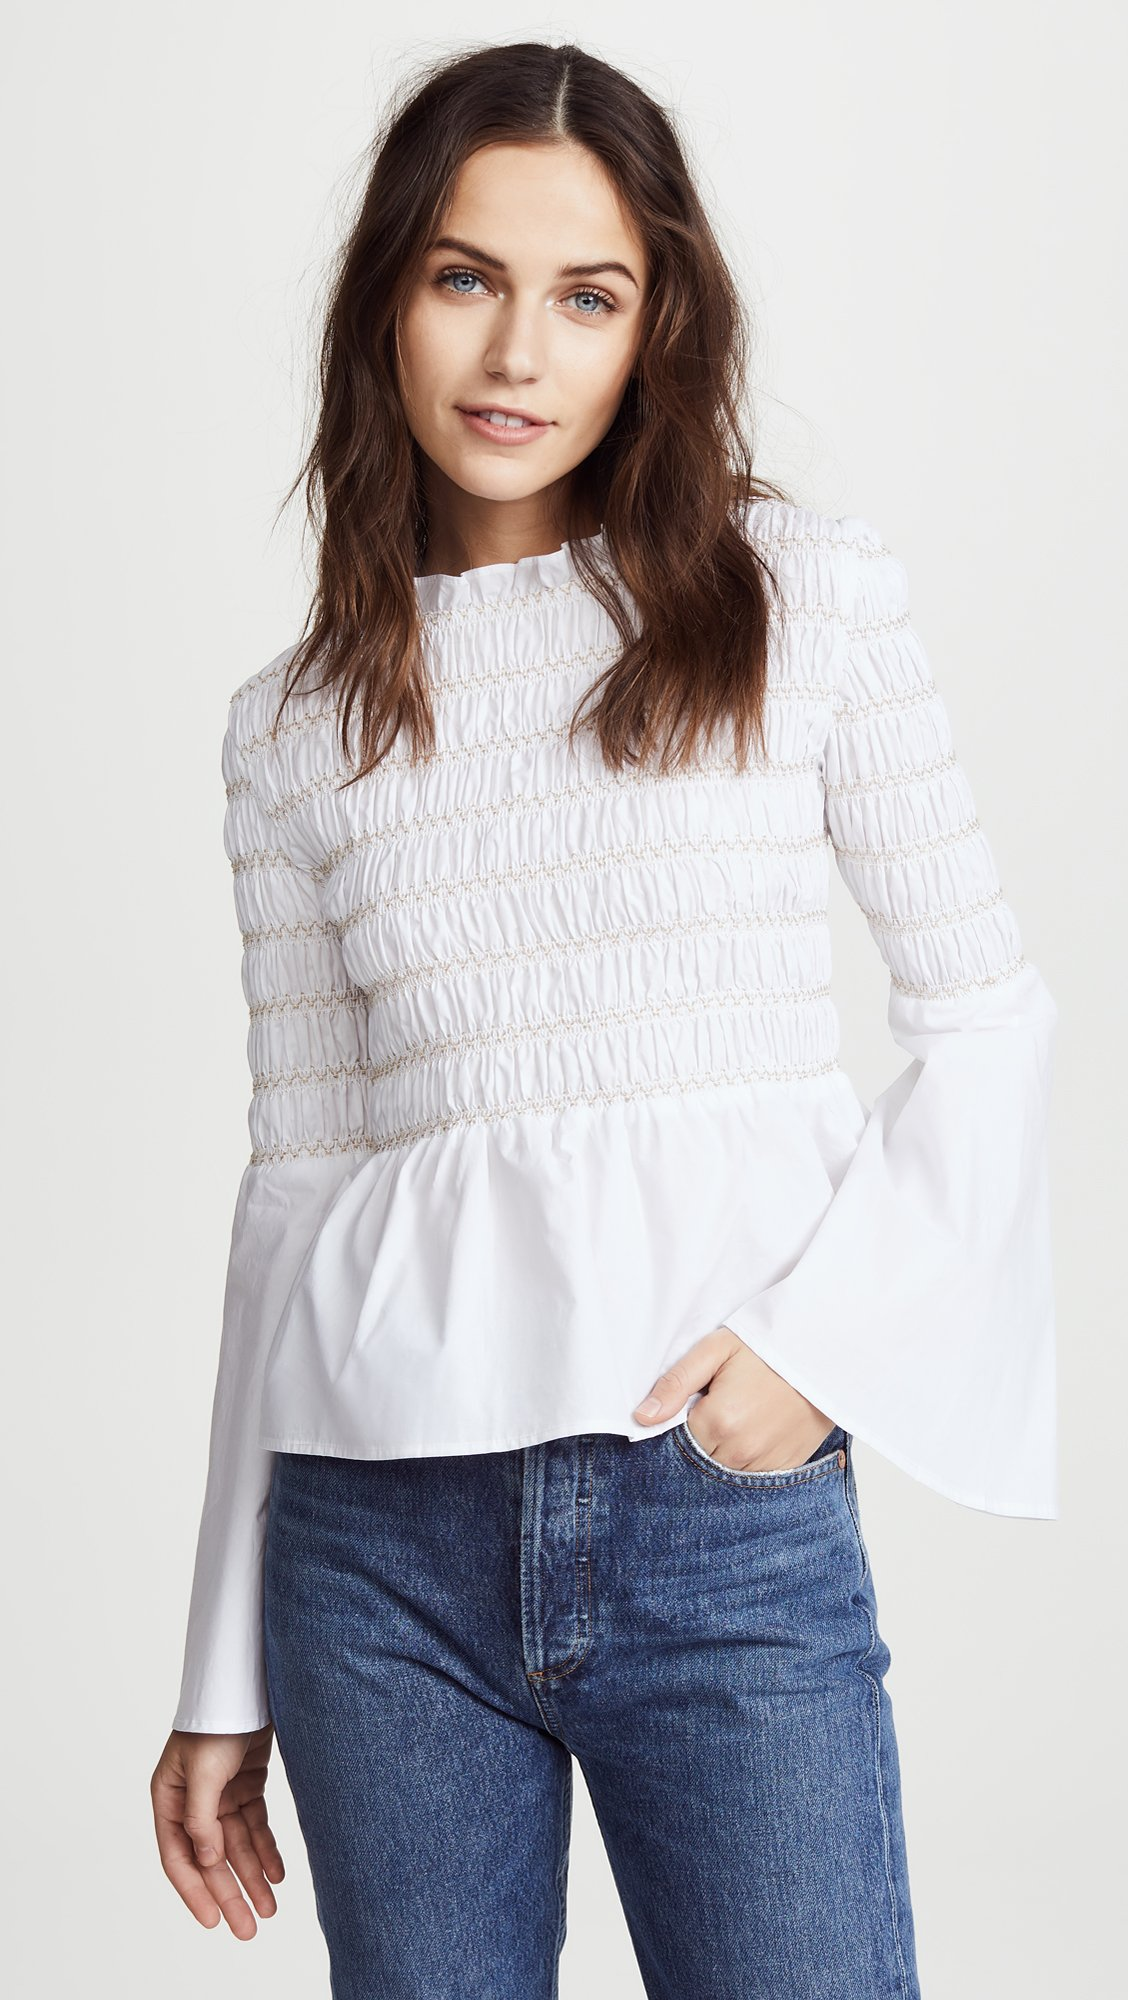 endless rose Women's Smocked Poplin Top, Off White, Small by endless rose (Image #2)